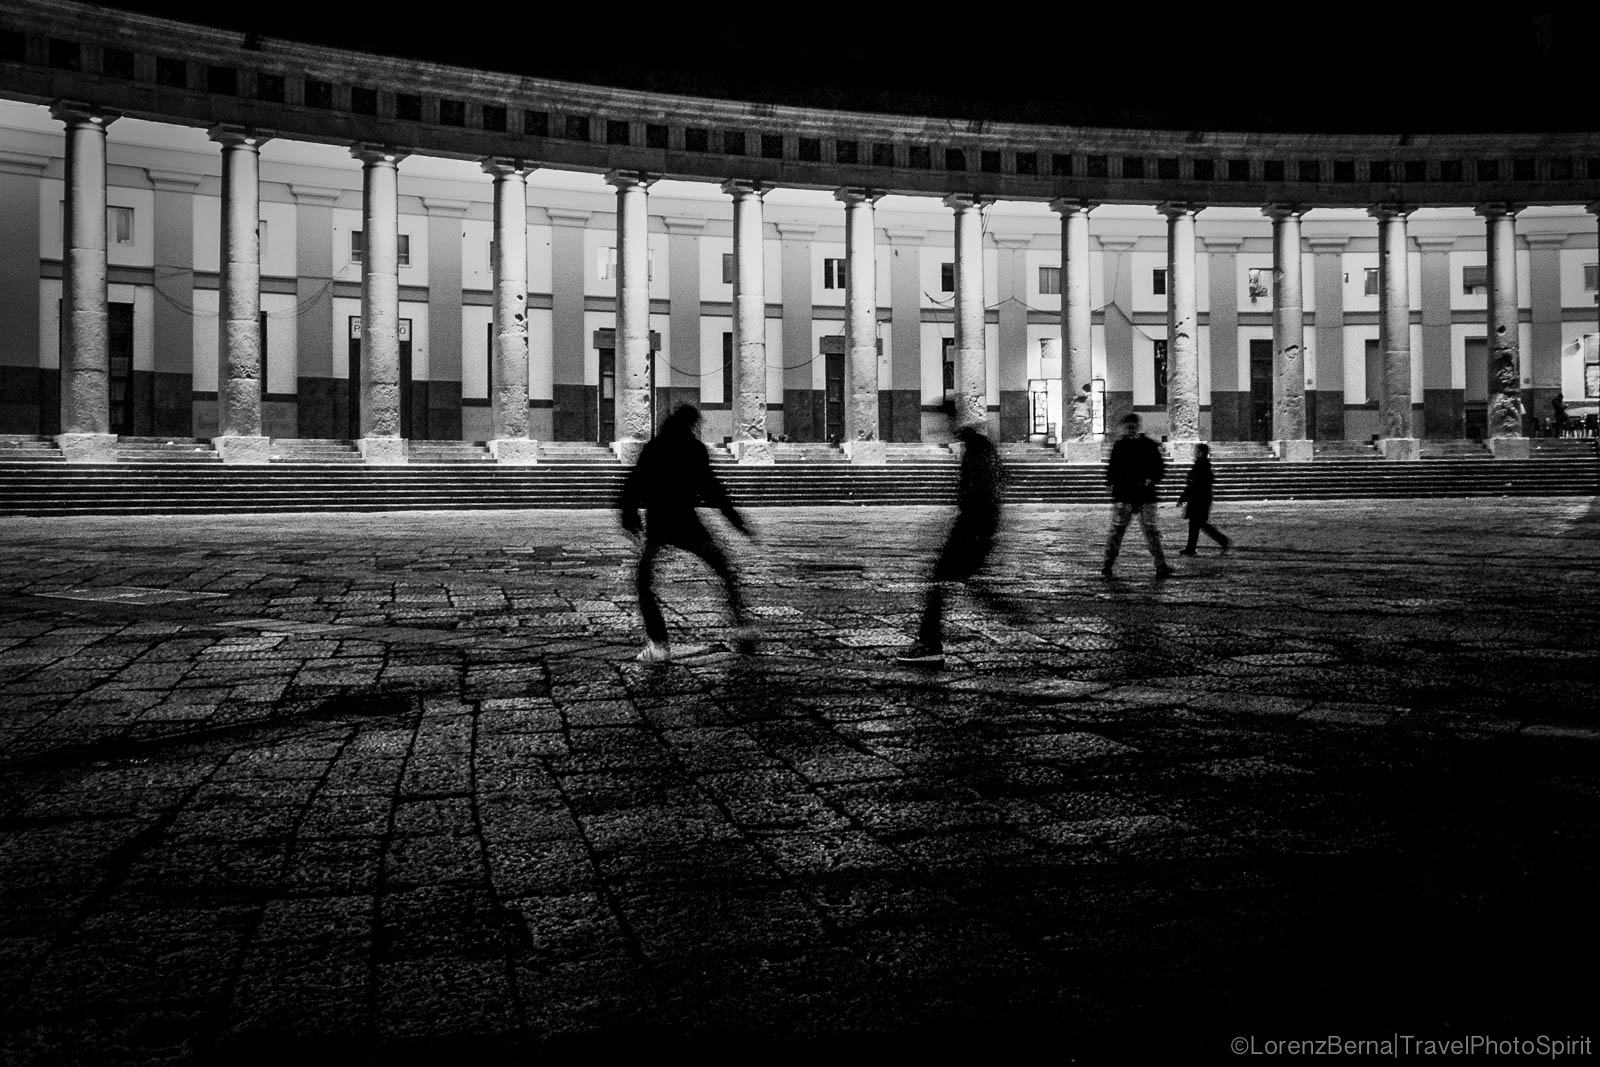 Football in Piazza del Plebiscito, Naples, Italy.